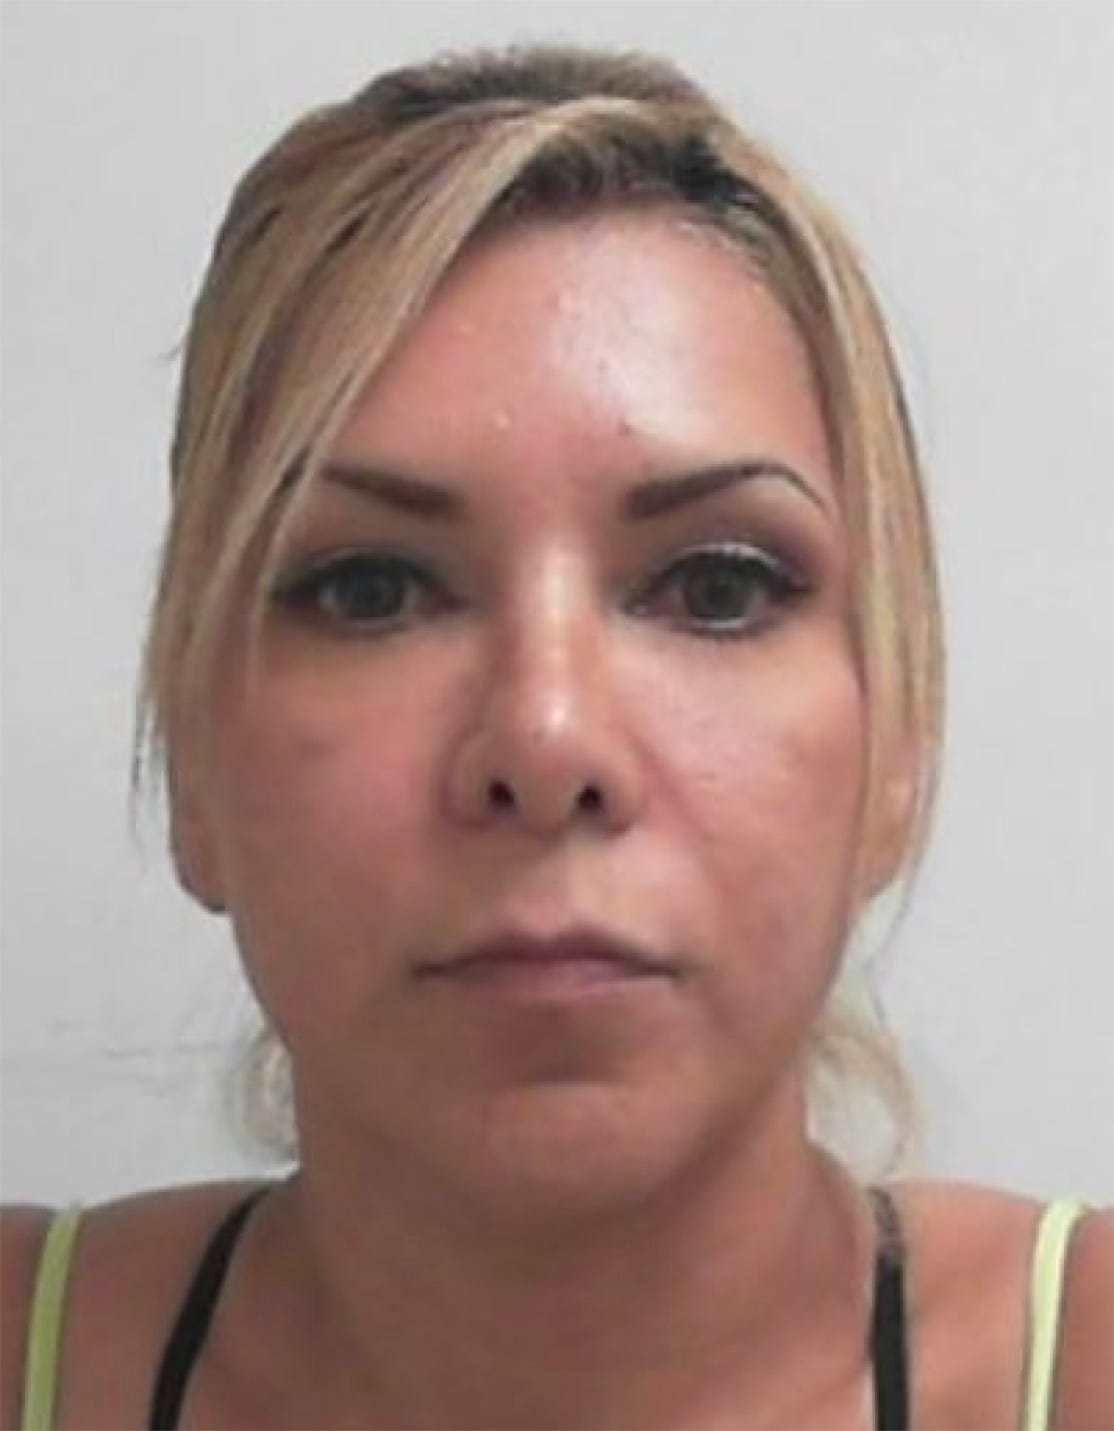 Convicted drug trafficker Maria Guadalupe Mendoza claims she is the girlfriend of married cartel leader El Mencho. The texts between the two nearly led to the billionaire kingpin's capture.